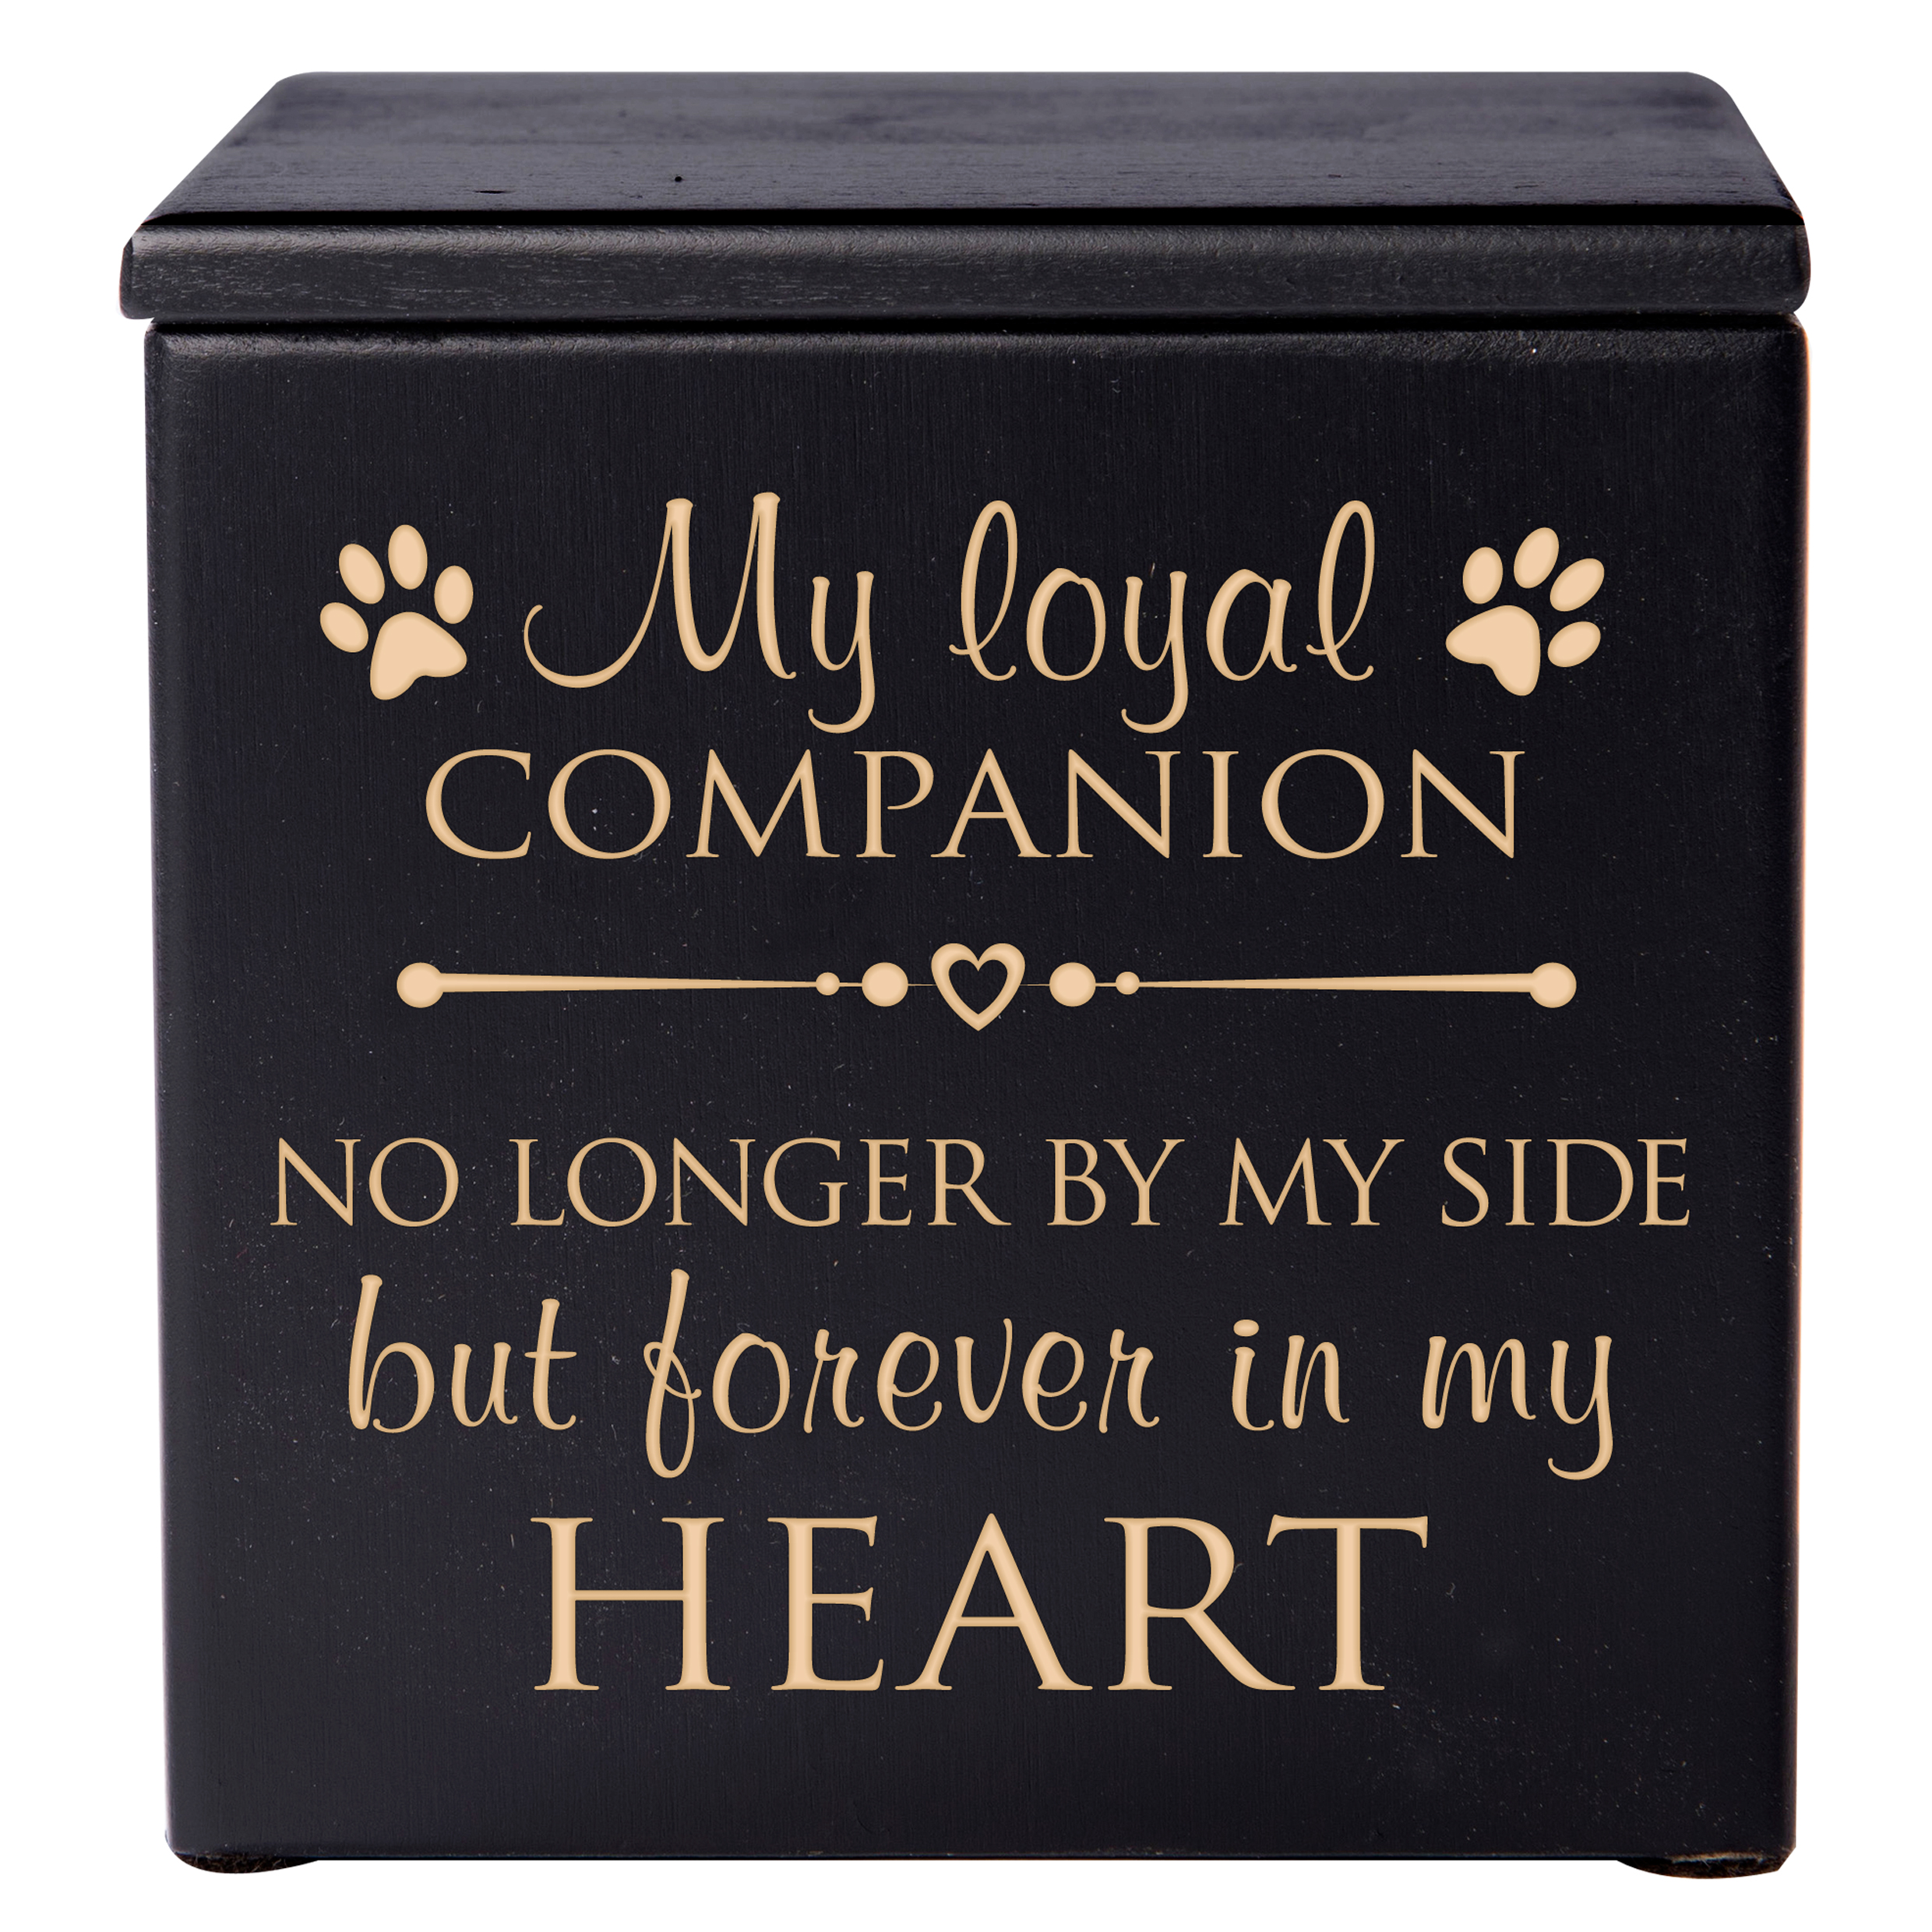 Pet Cremation Urn - My Loyal Companion No Longer By My Side But Forever in My Heart - Small (Black)